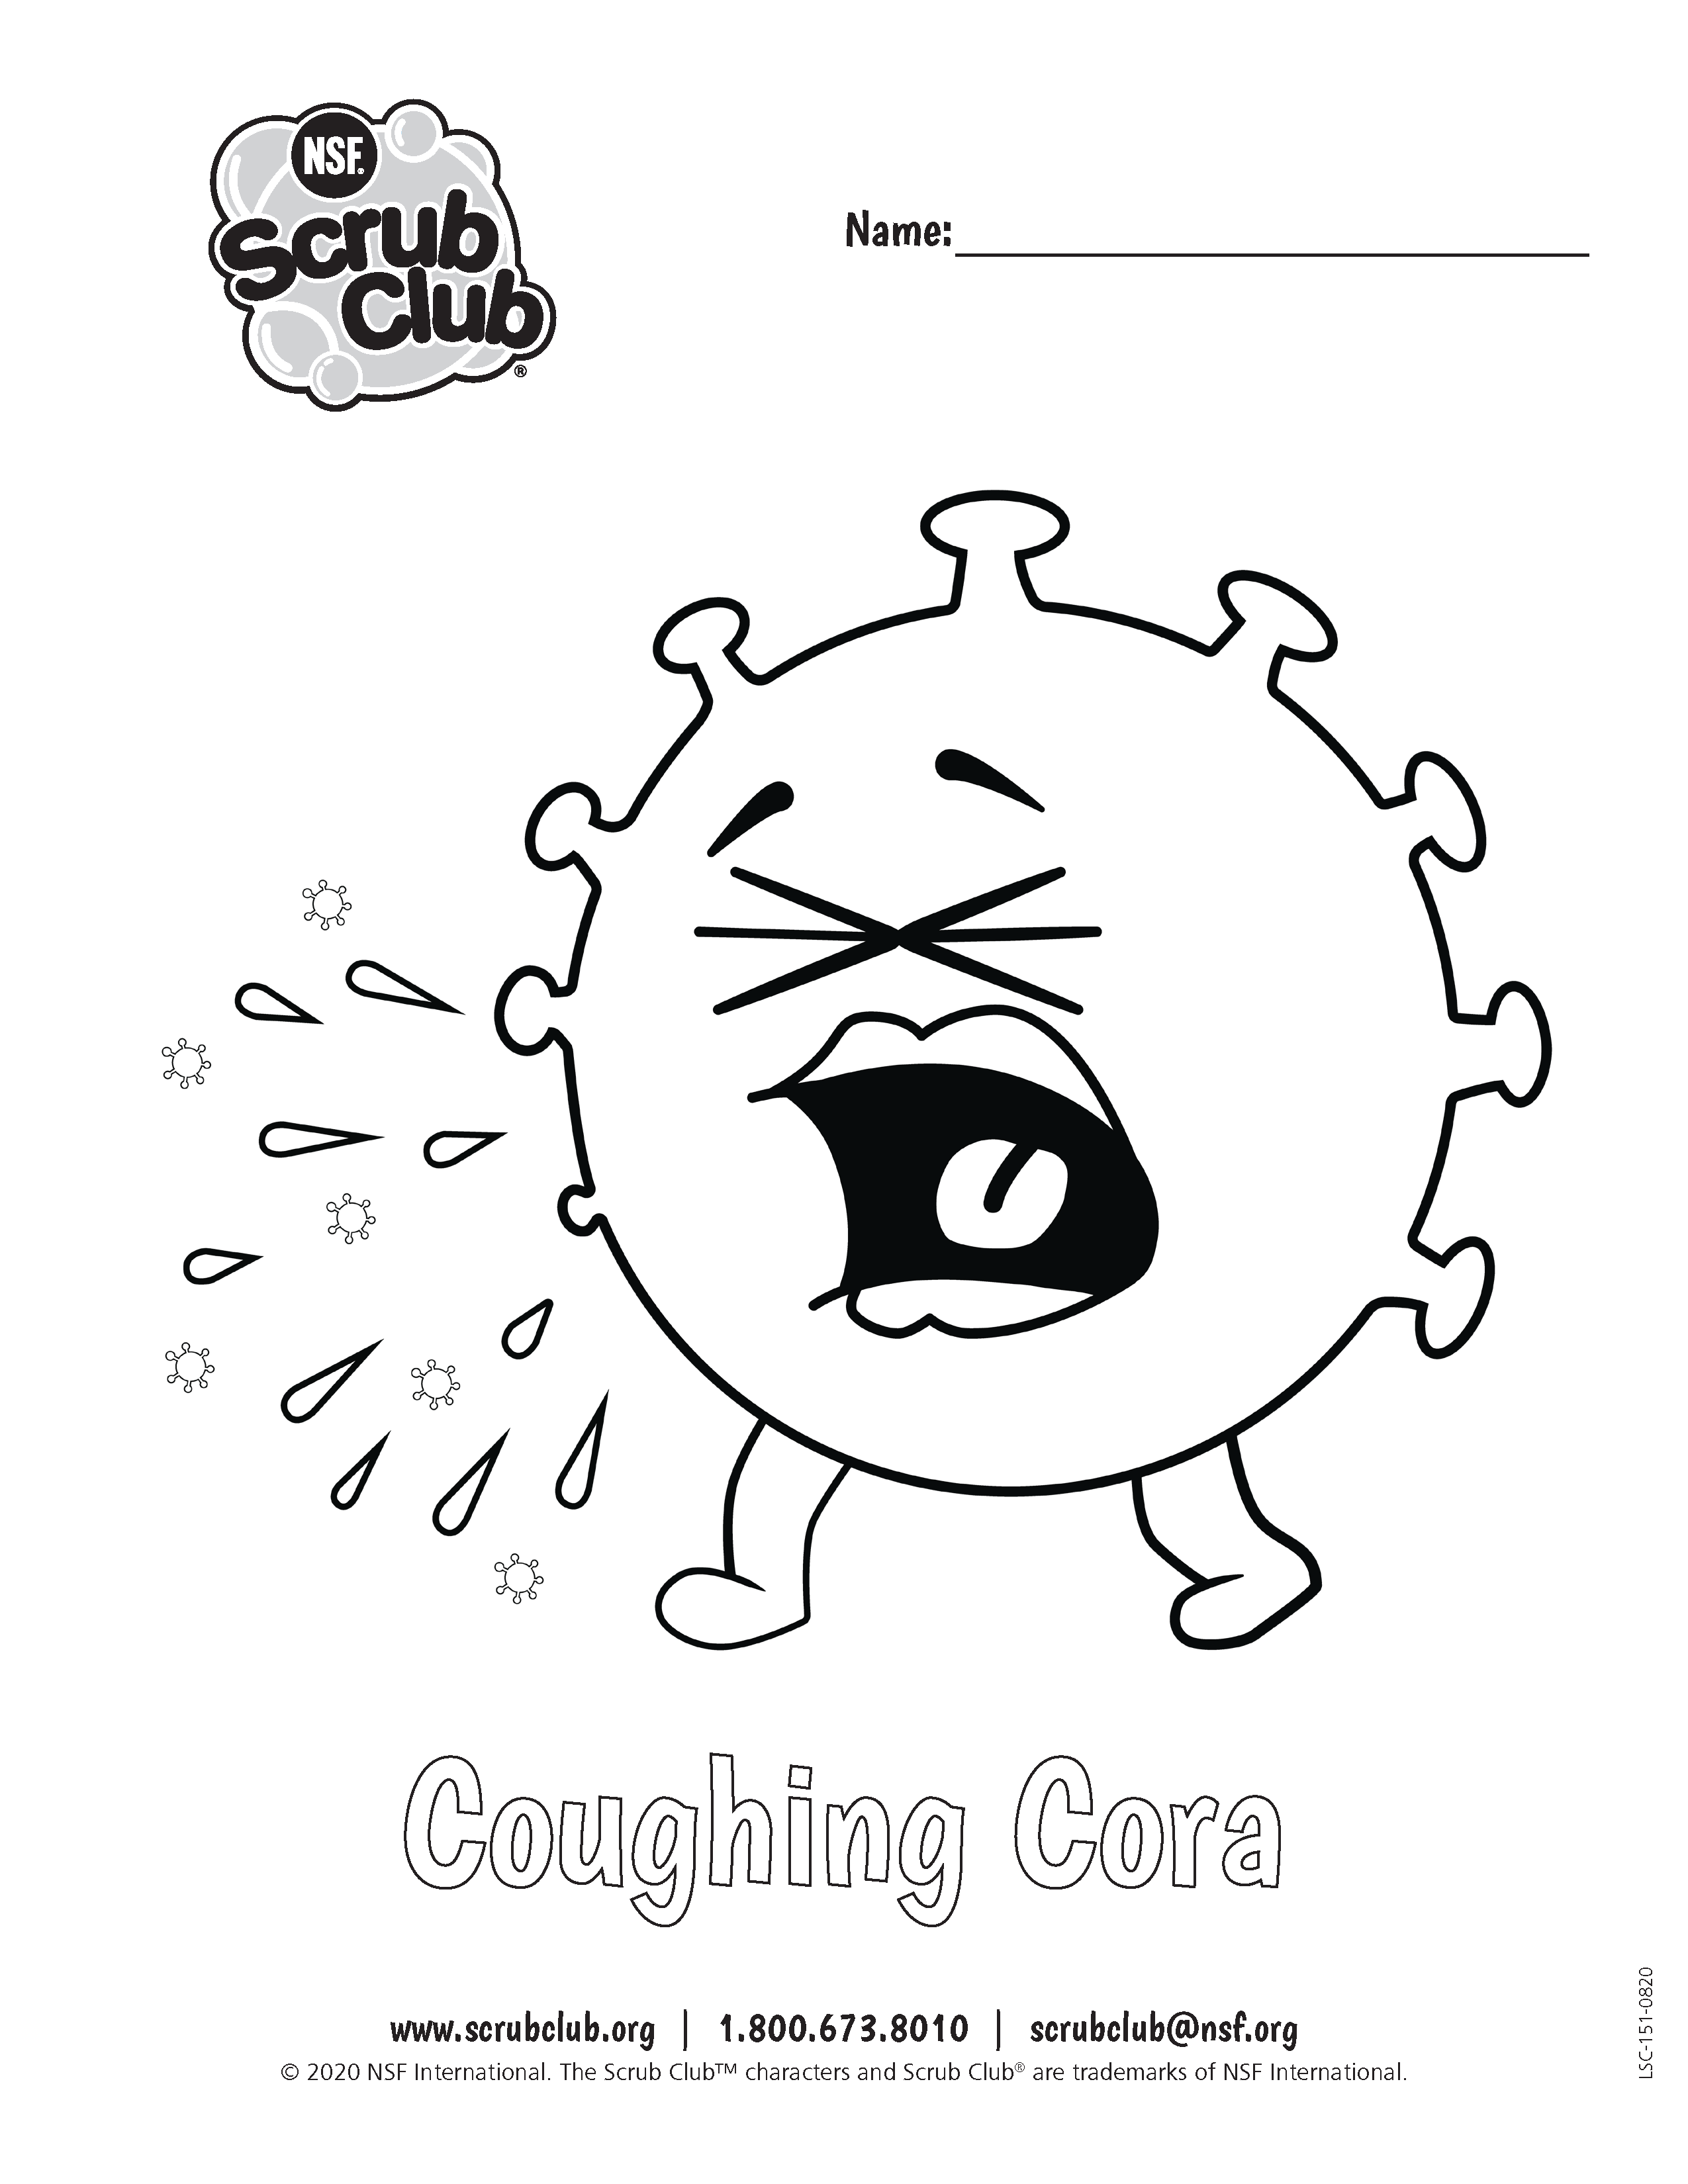 Coloring Worksheet Coughing Cora Free Printable Coloring Sheets Preschool Planning Activities For Kids [ 3300 x 2550 Pixel ]